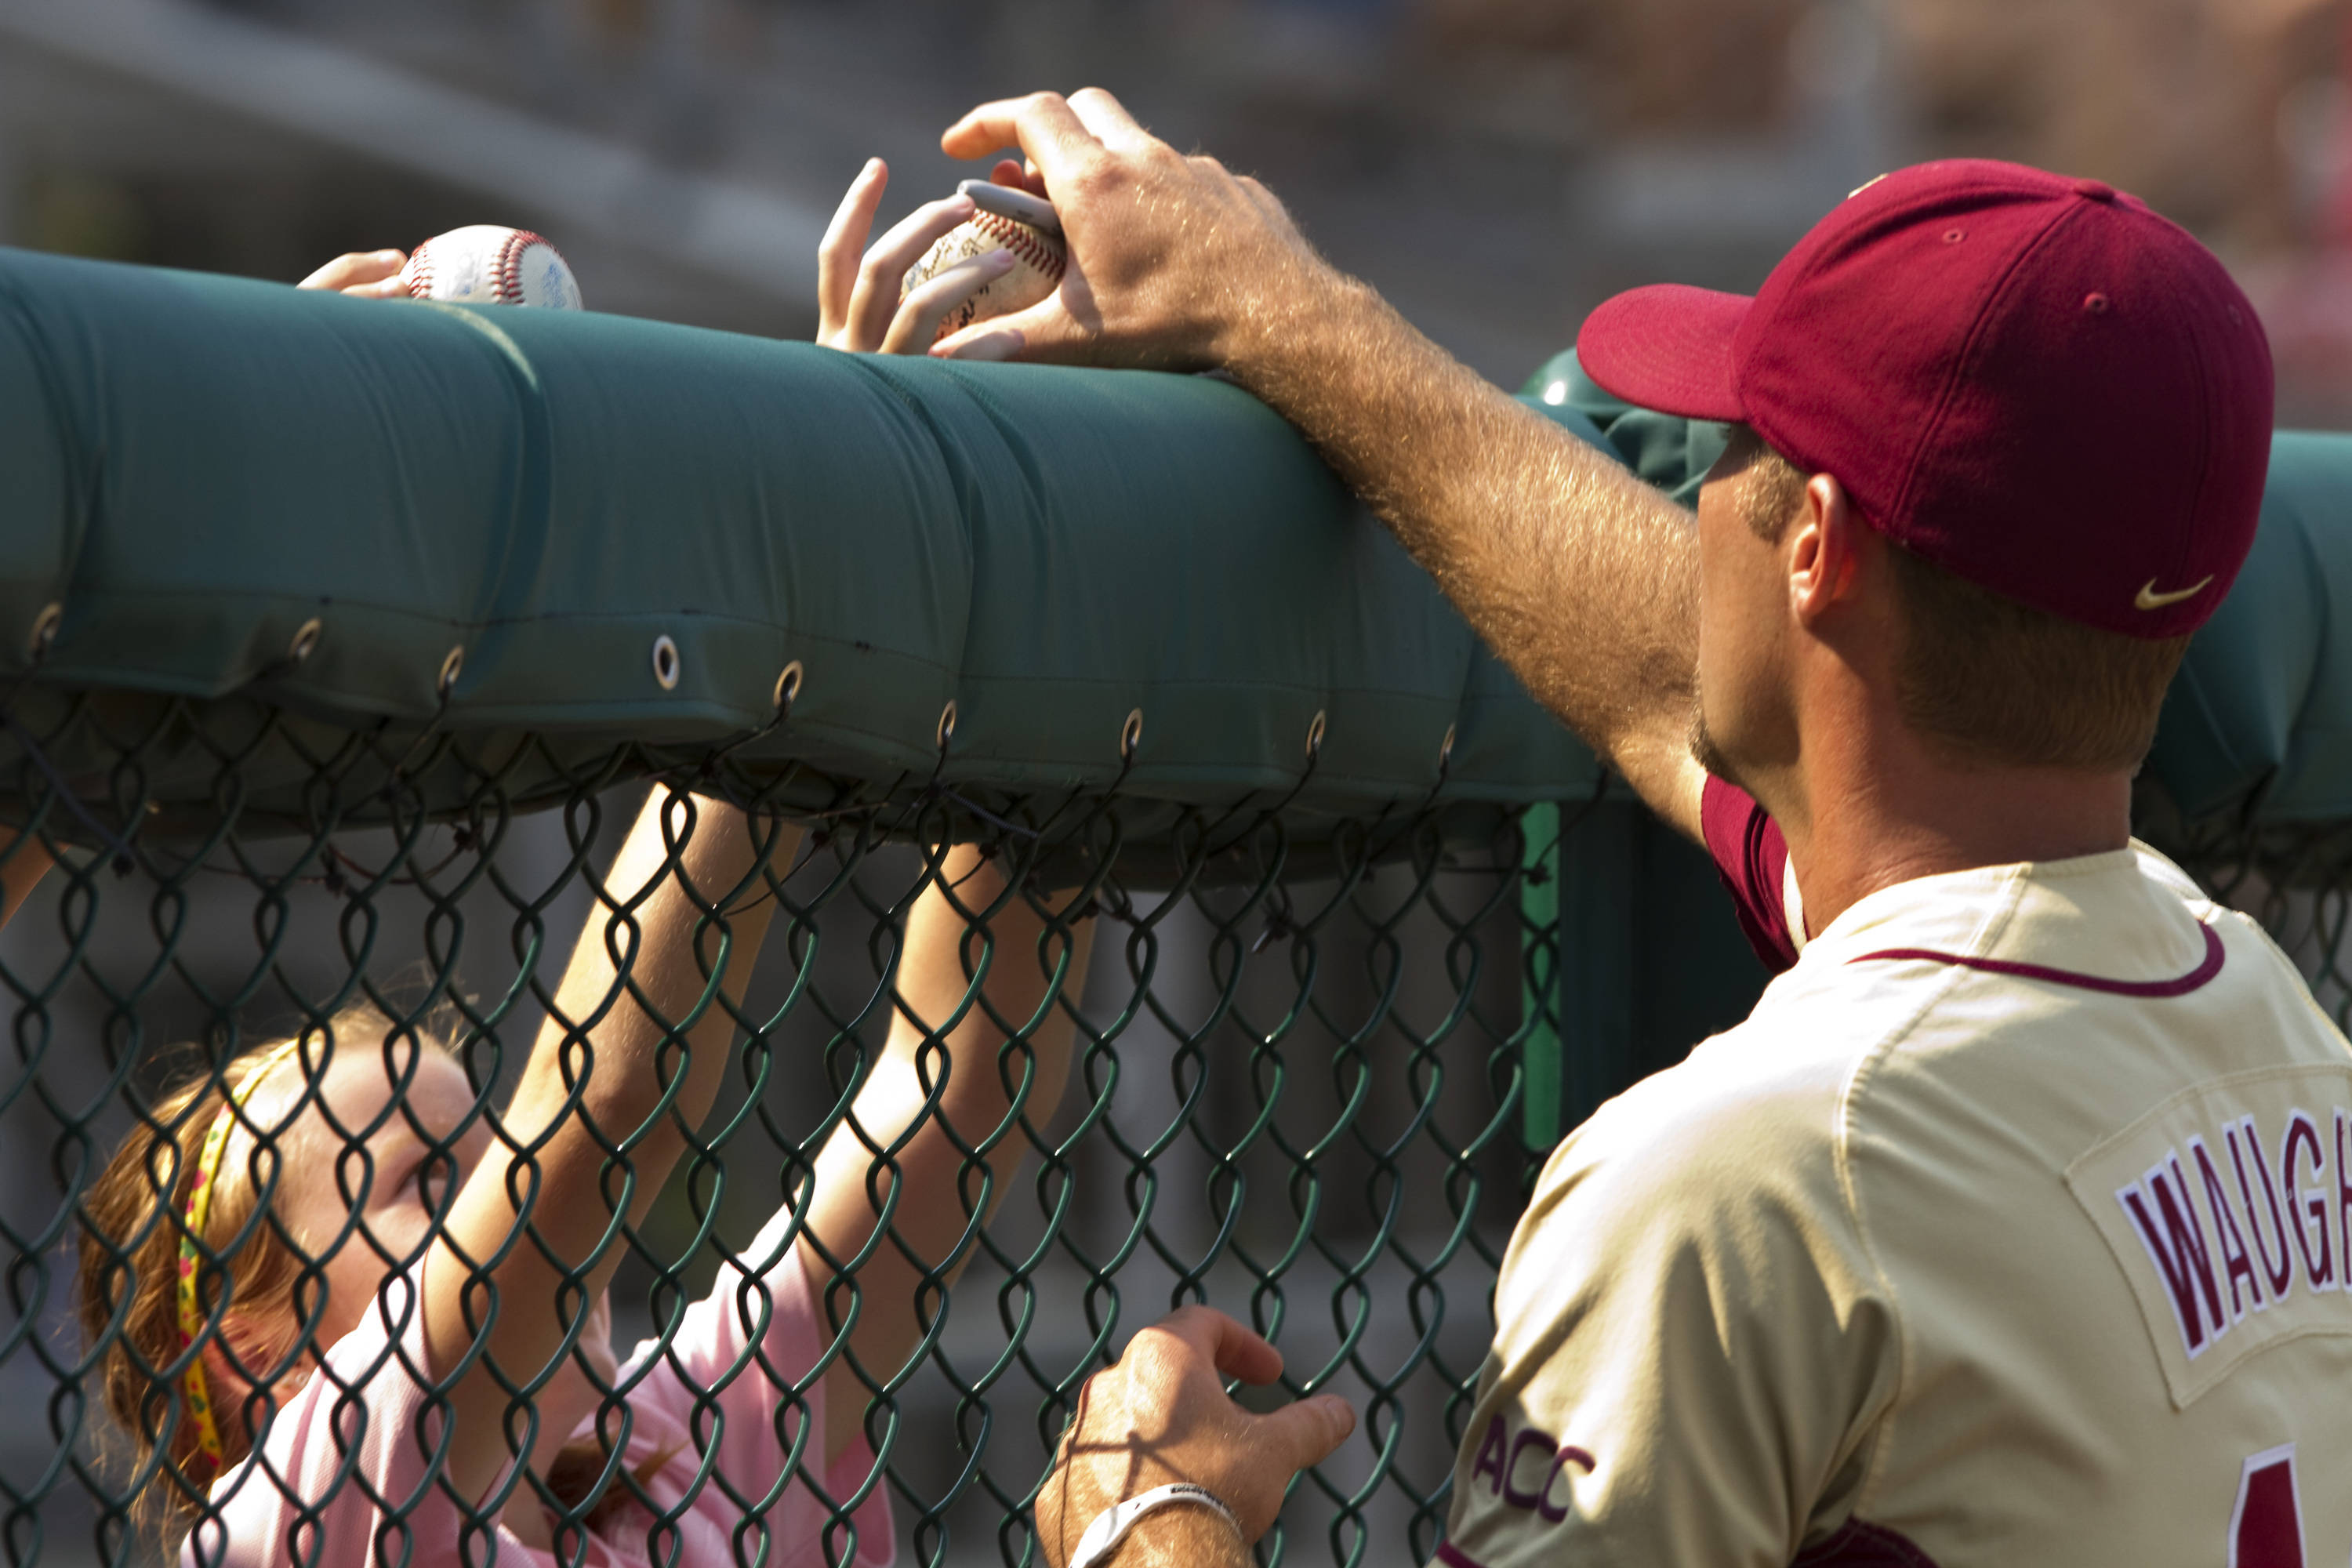 Mack Waugh (44) autographs a baseball for a young fan.